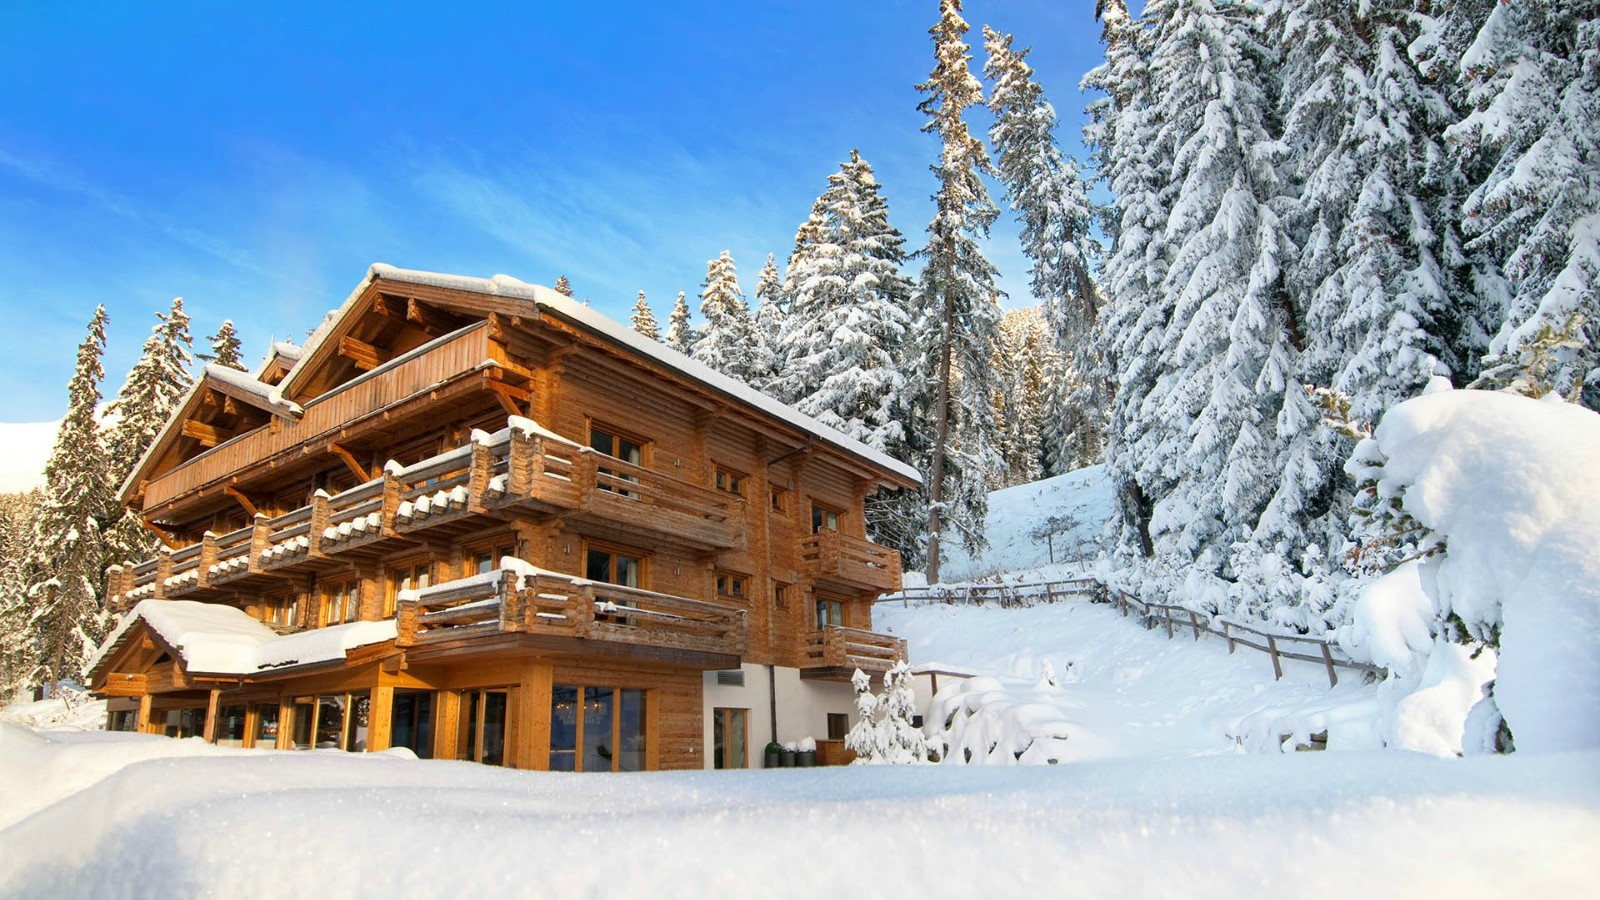 How To Make Your Home Feel Like A Luxe Ski Lodge | HuffPost